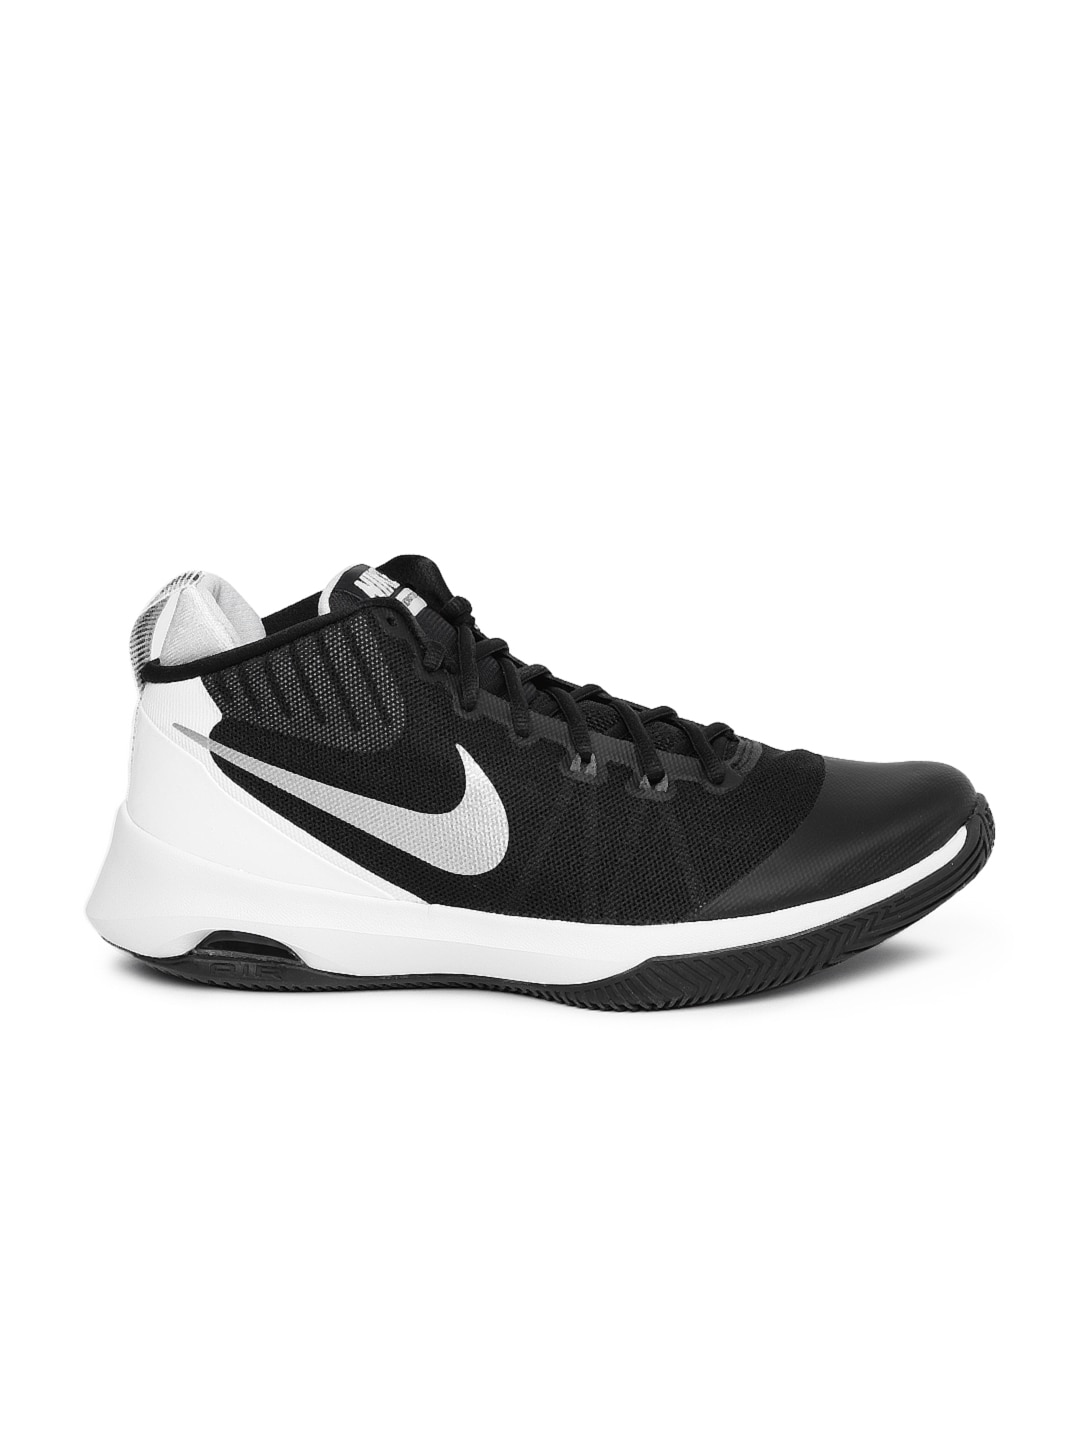 Nike Shoes Sneakers For Men